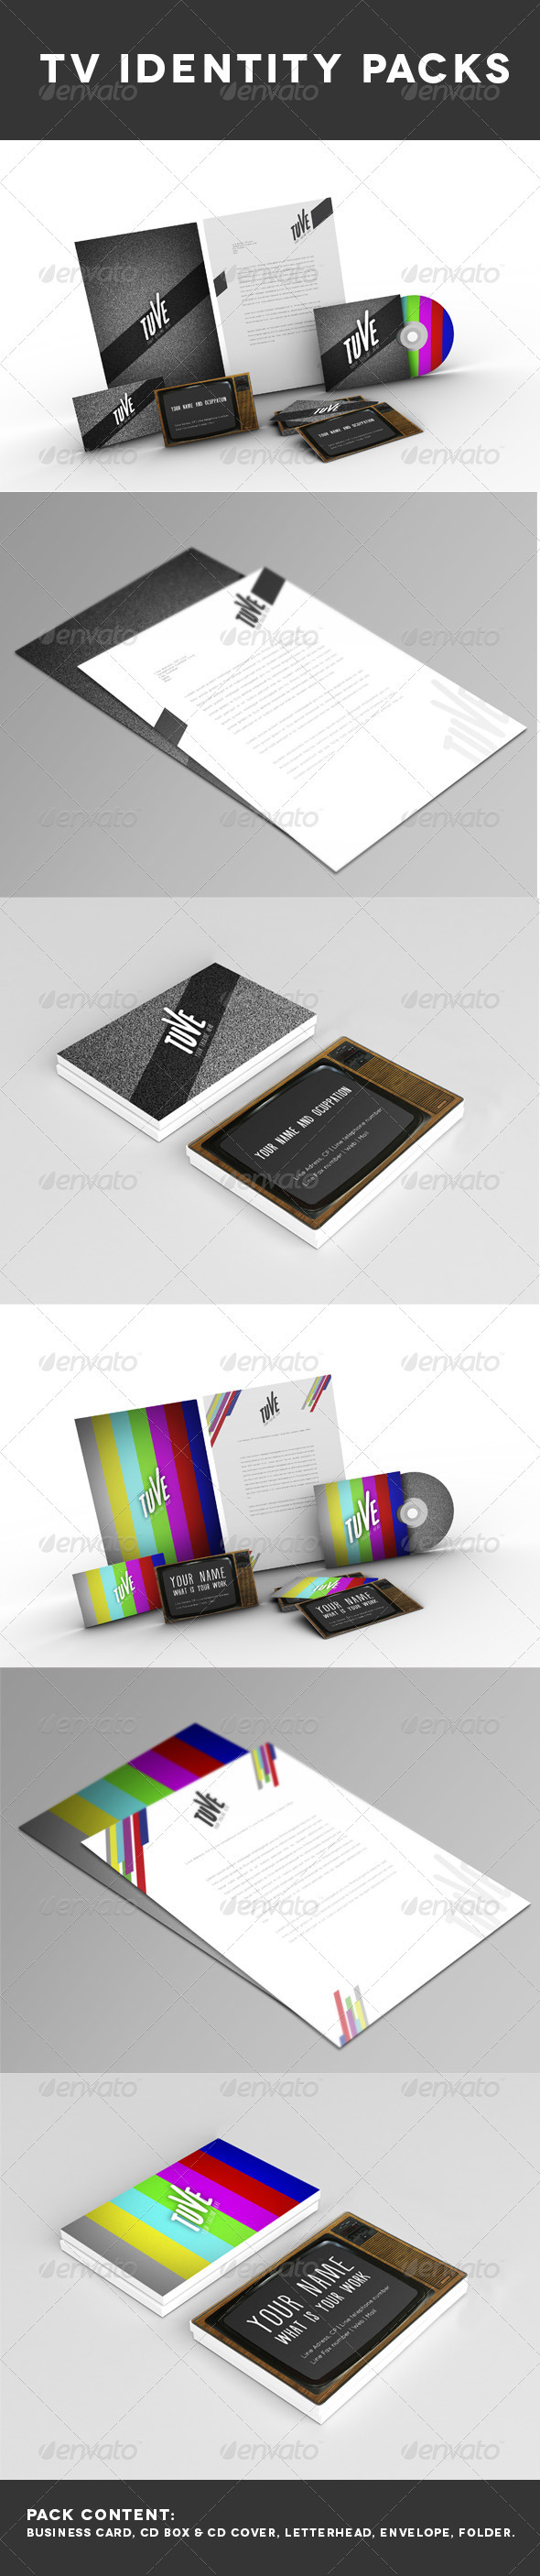 TV identity Pack x 2 - Stationery Print Templates